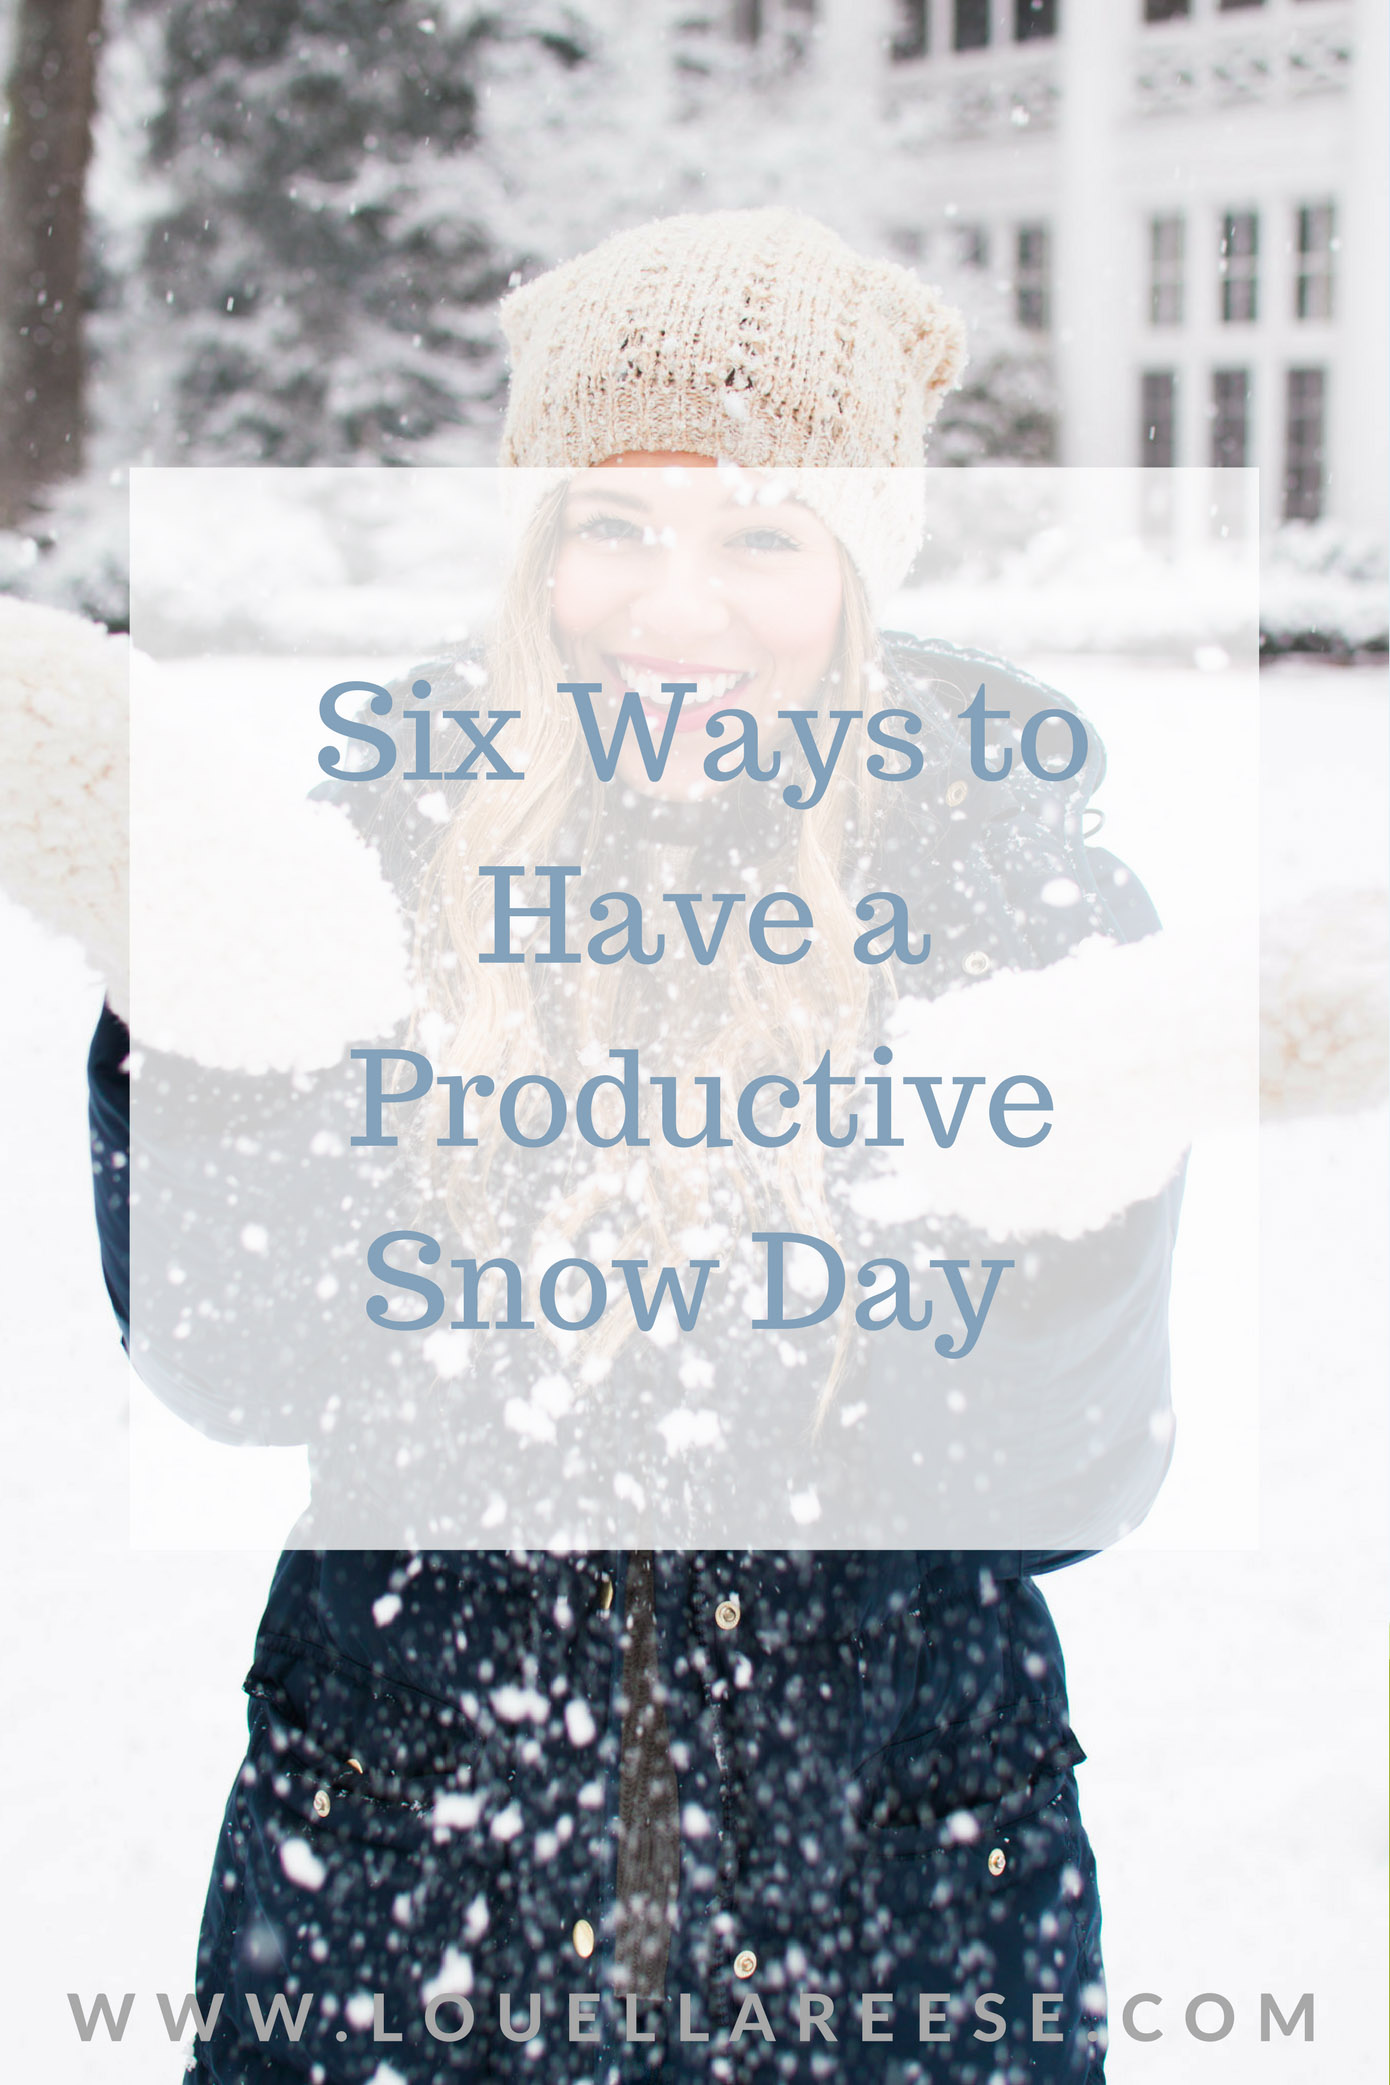 Six Ways to Have a Productive Snow Day | Louella Reese Life & Style Blog